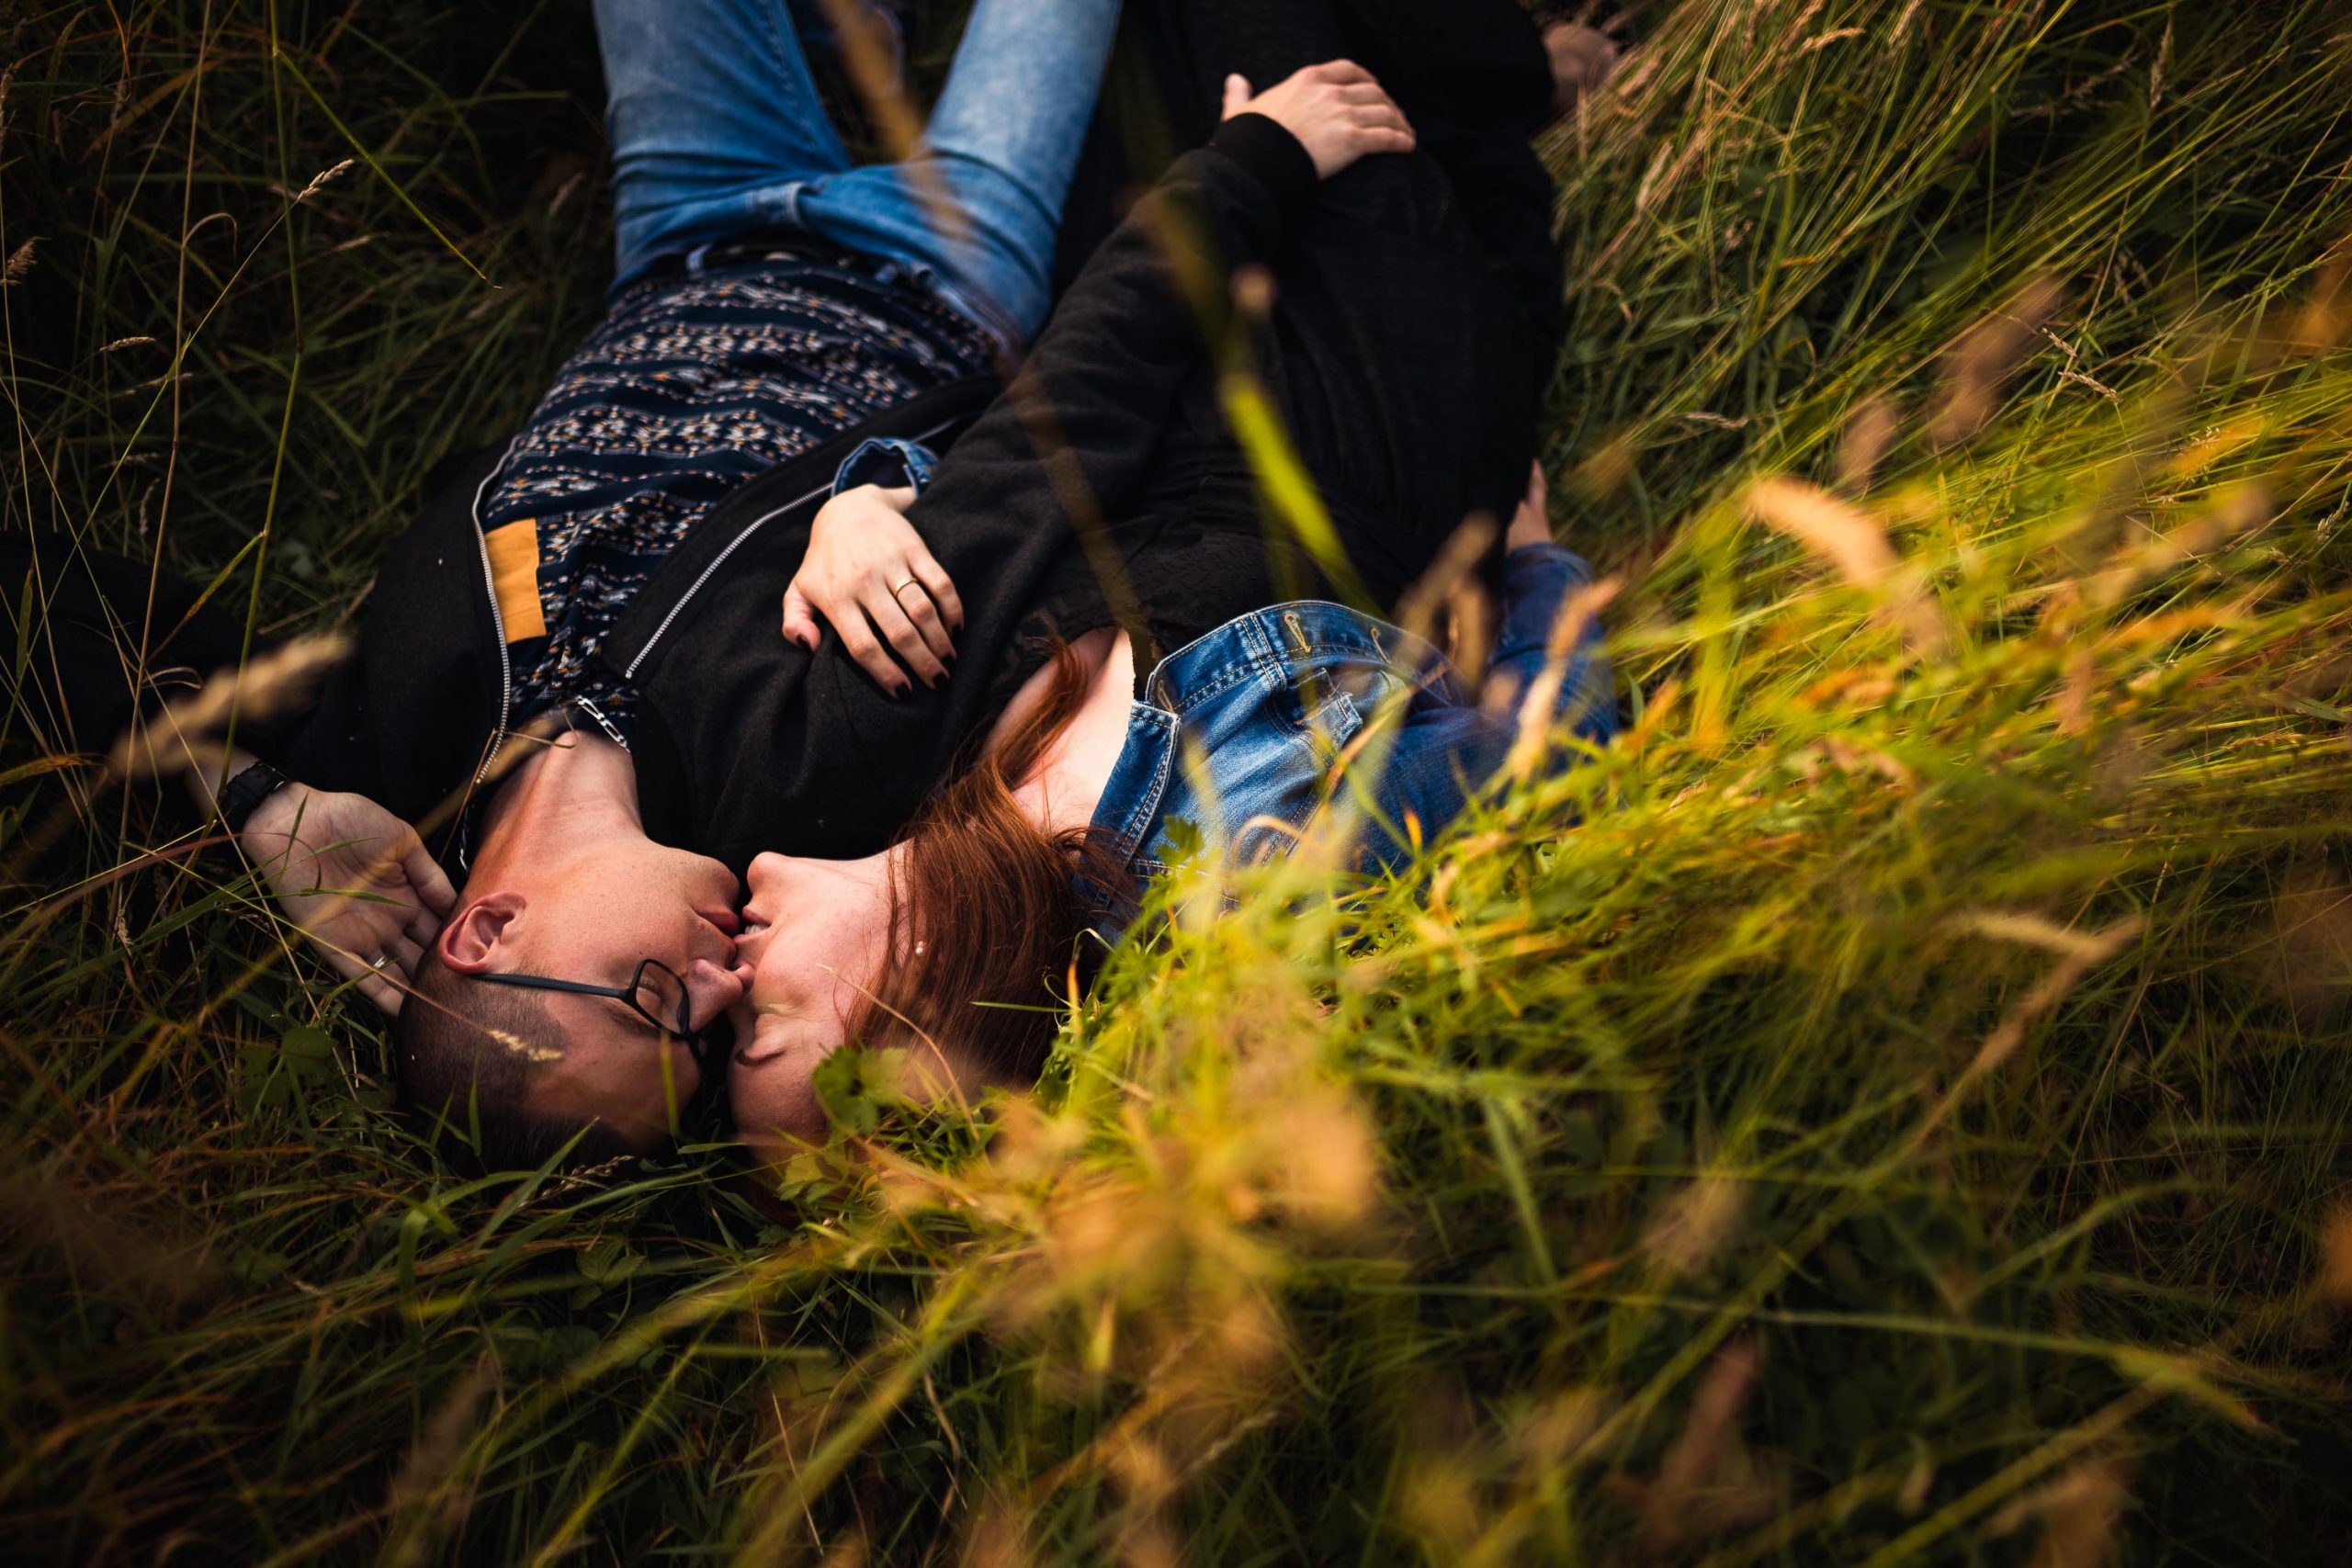 Photographie d'un couple allongé dans l'herbe.